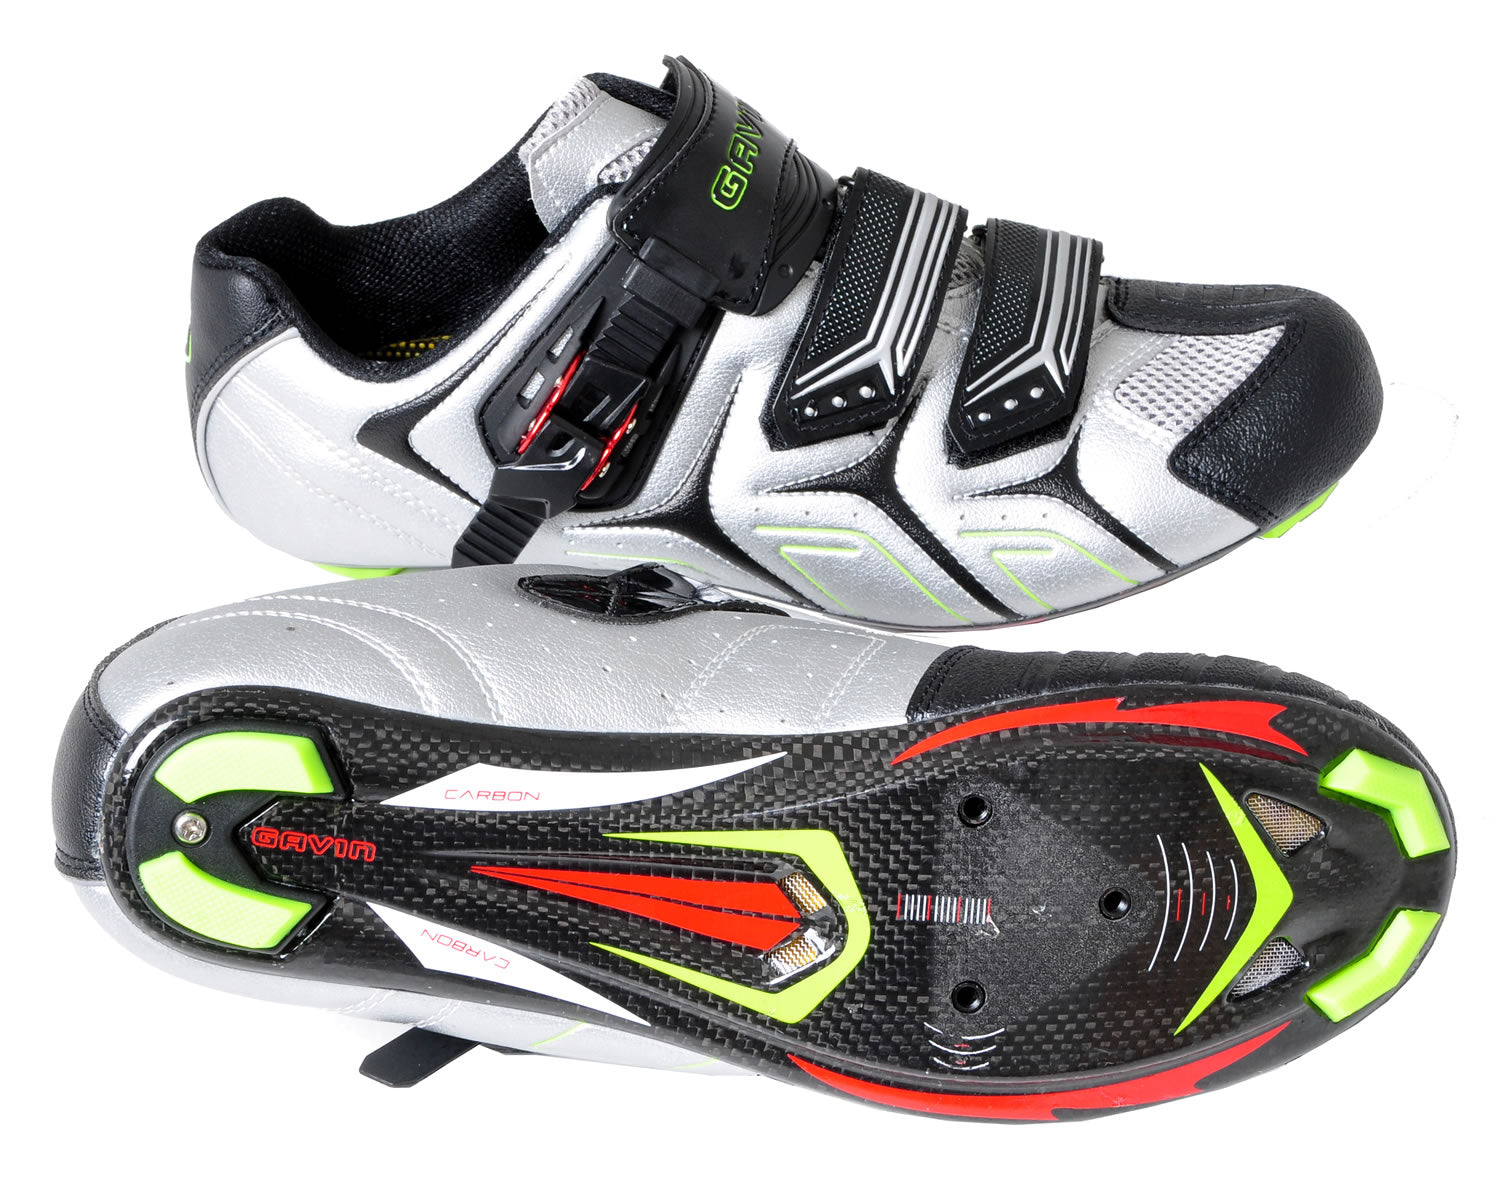 products/525-CARBON-SHOE__01.jpg_2.jpg